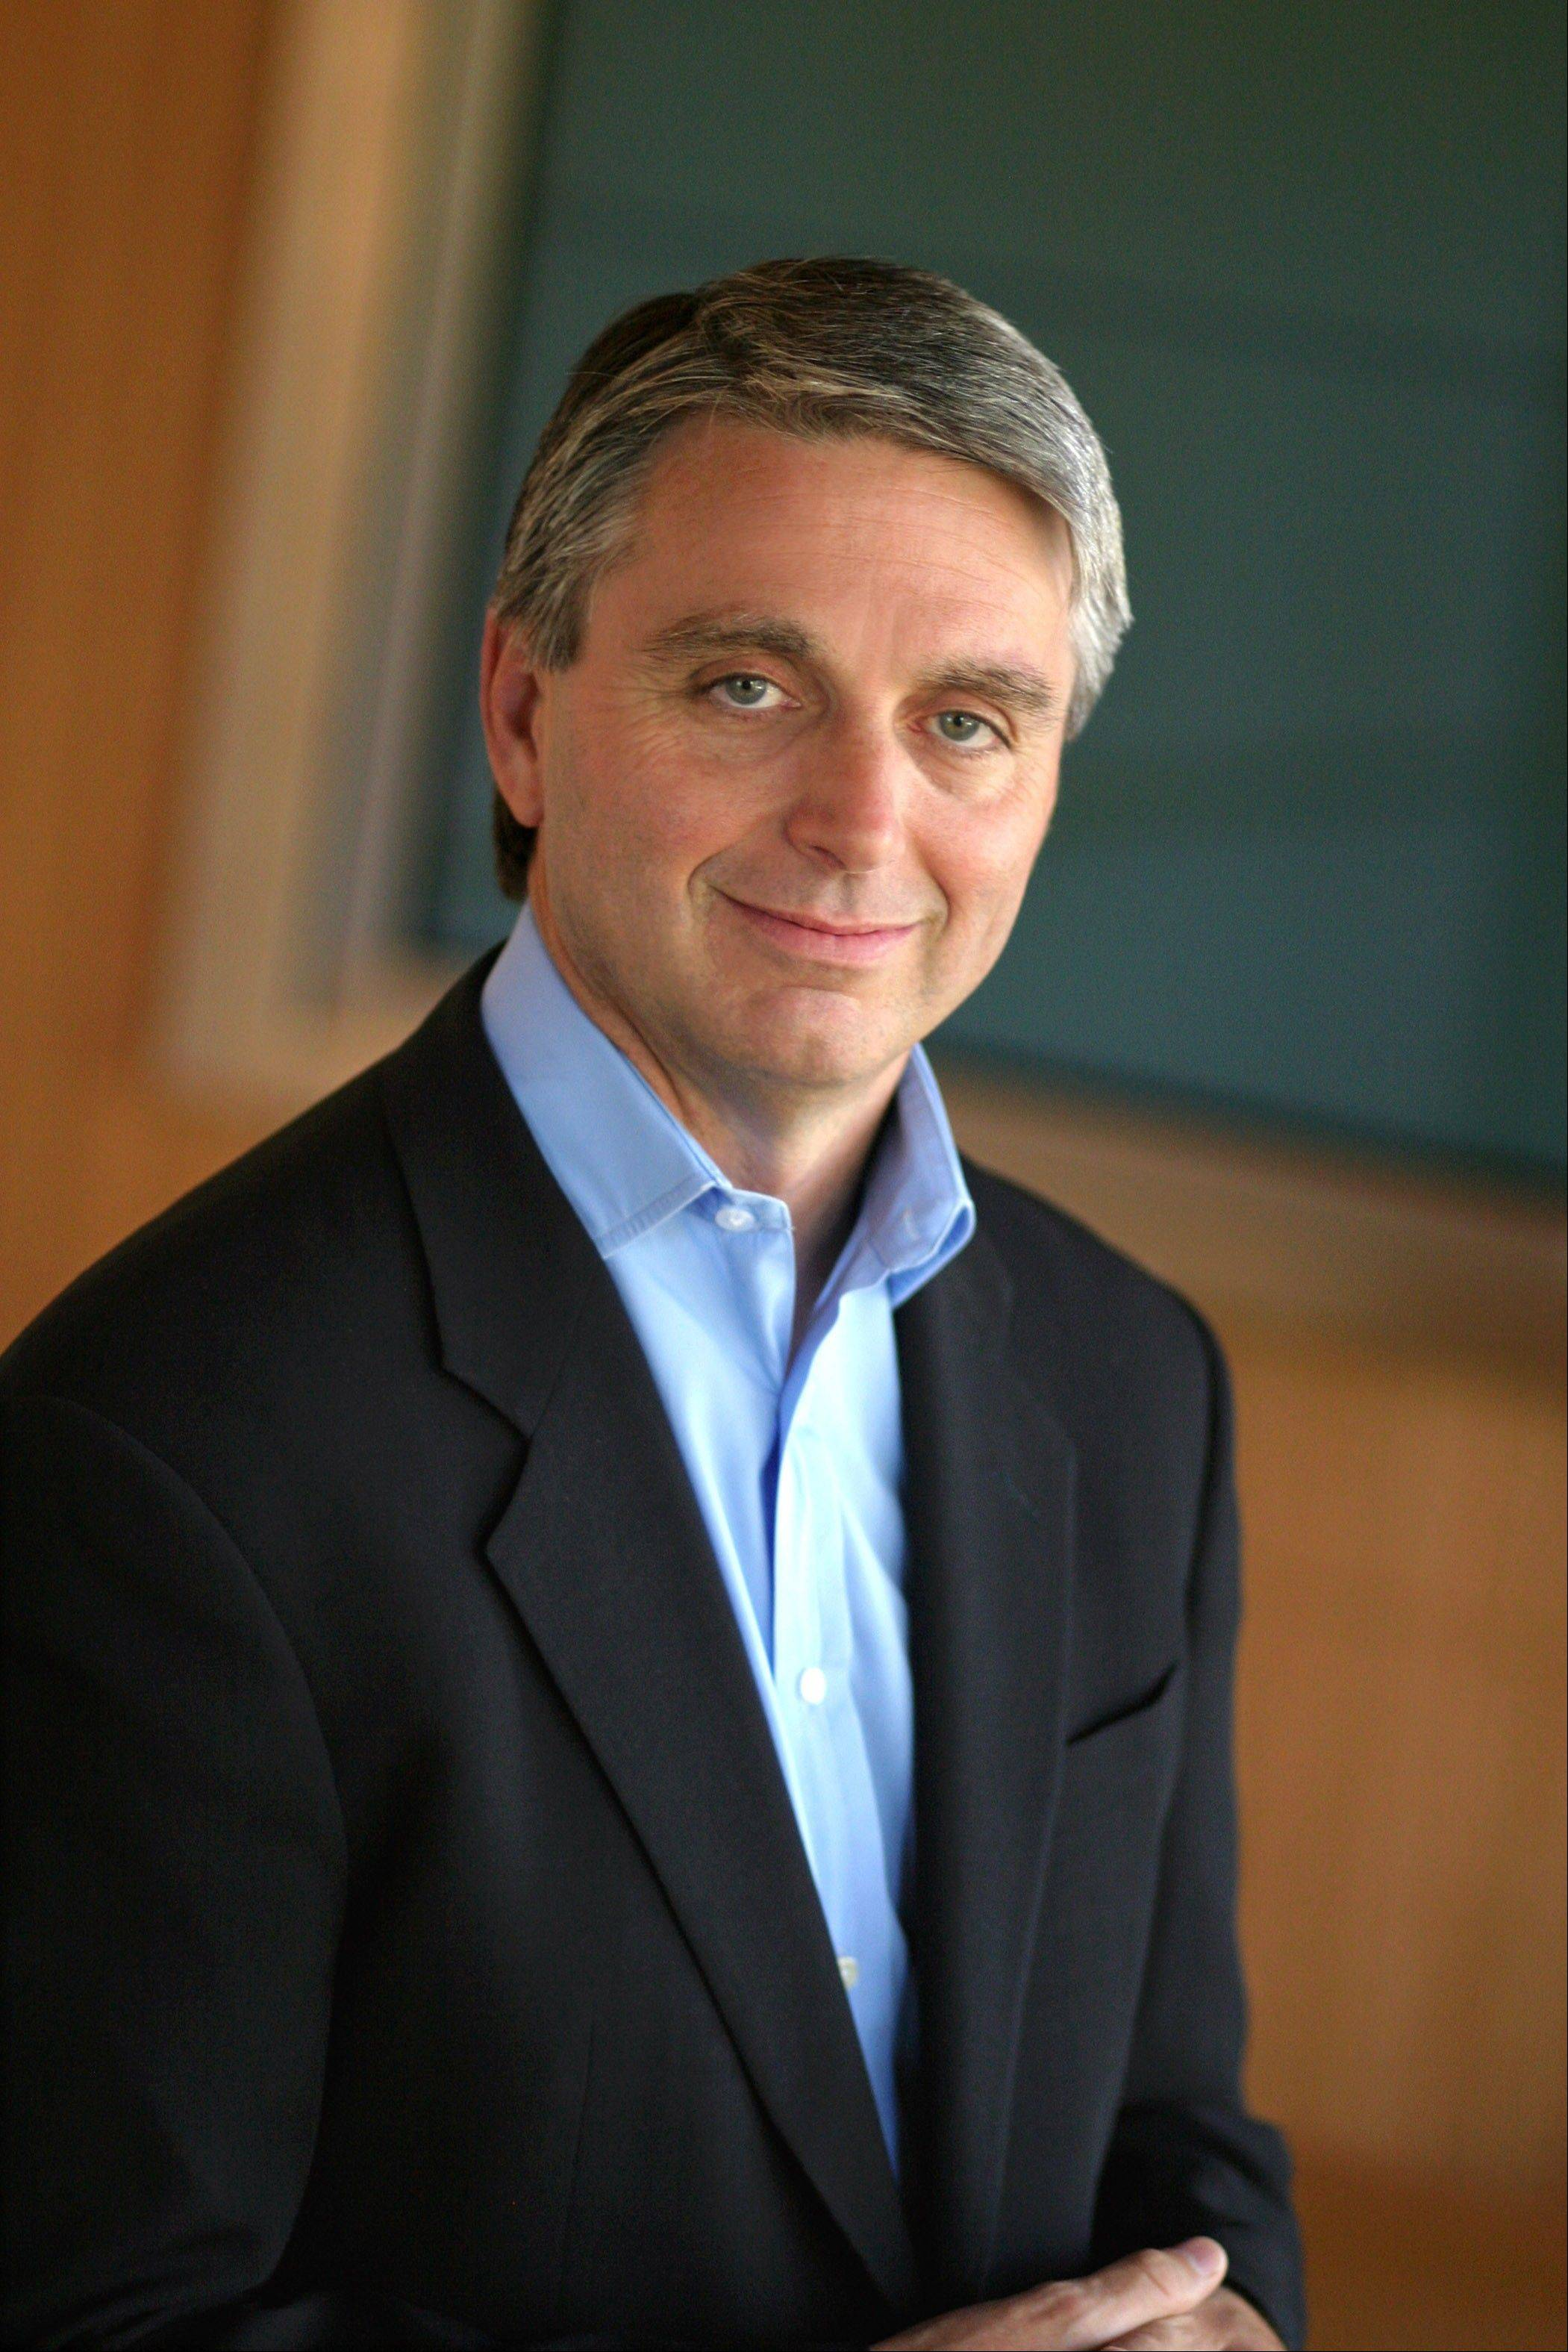 This 2005 photo released by Electronic Arts shows John Riccitiello in Menlo Park, Calif. Video game publisher Electronic Arts says its CEO, John Riccitiello, will step down on March 30. Electronic Arts Inc. said Monday, march 18, 2013 that it has named Larry Probst as executive chairman while it searches for a replacement.